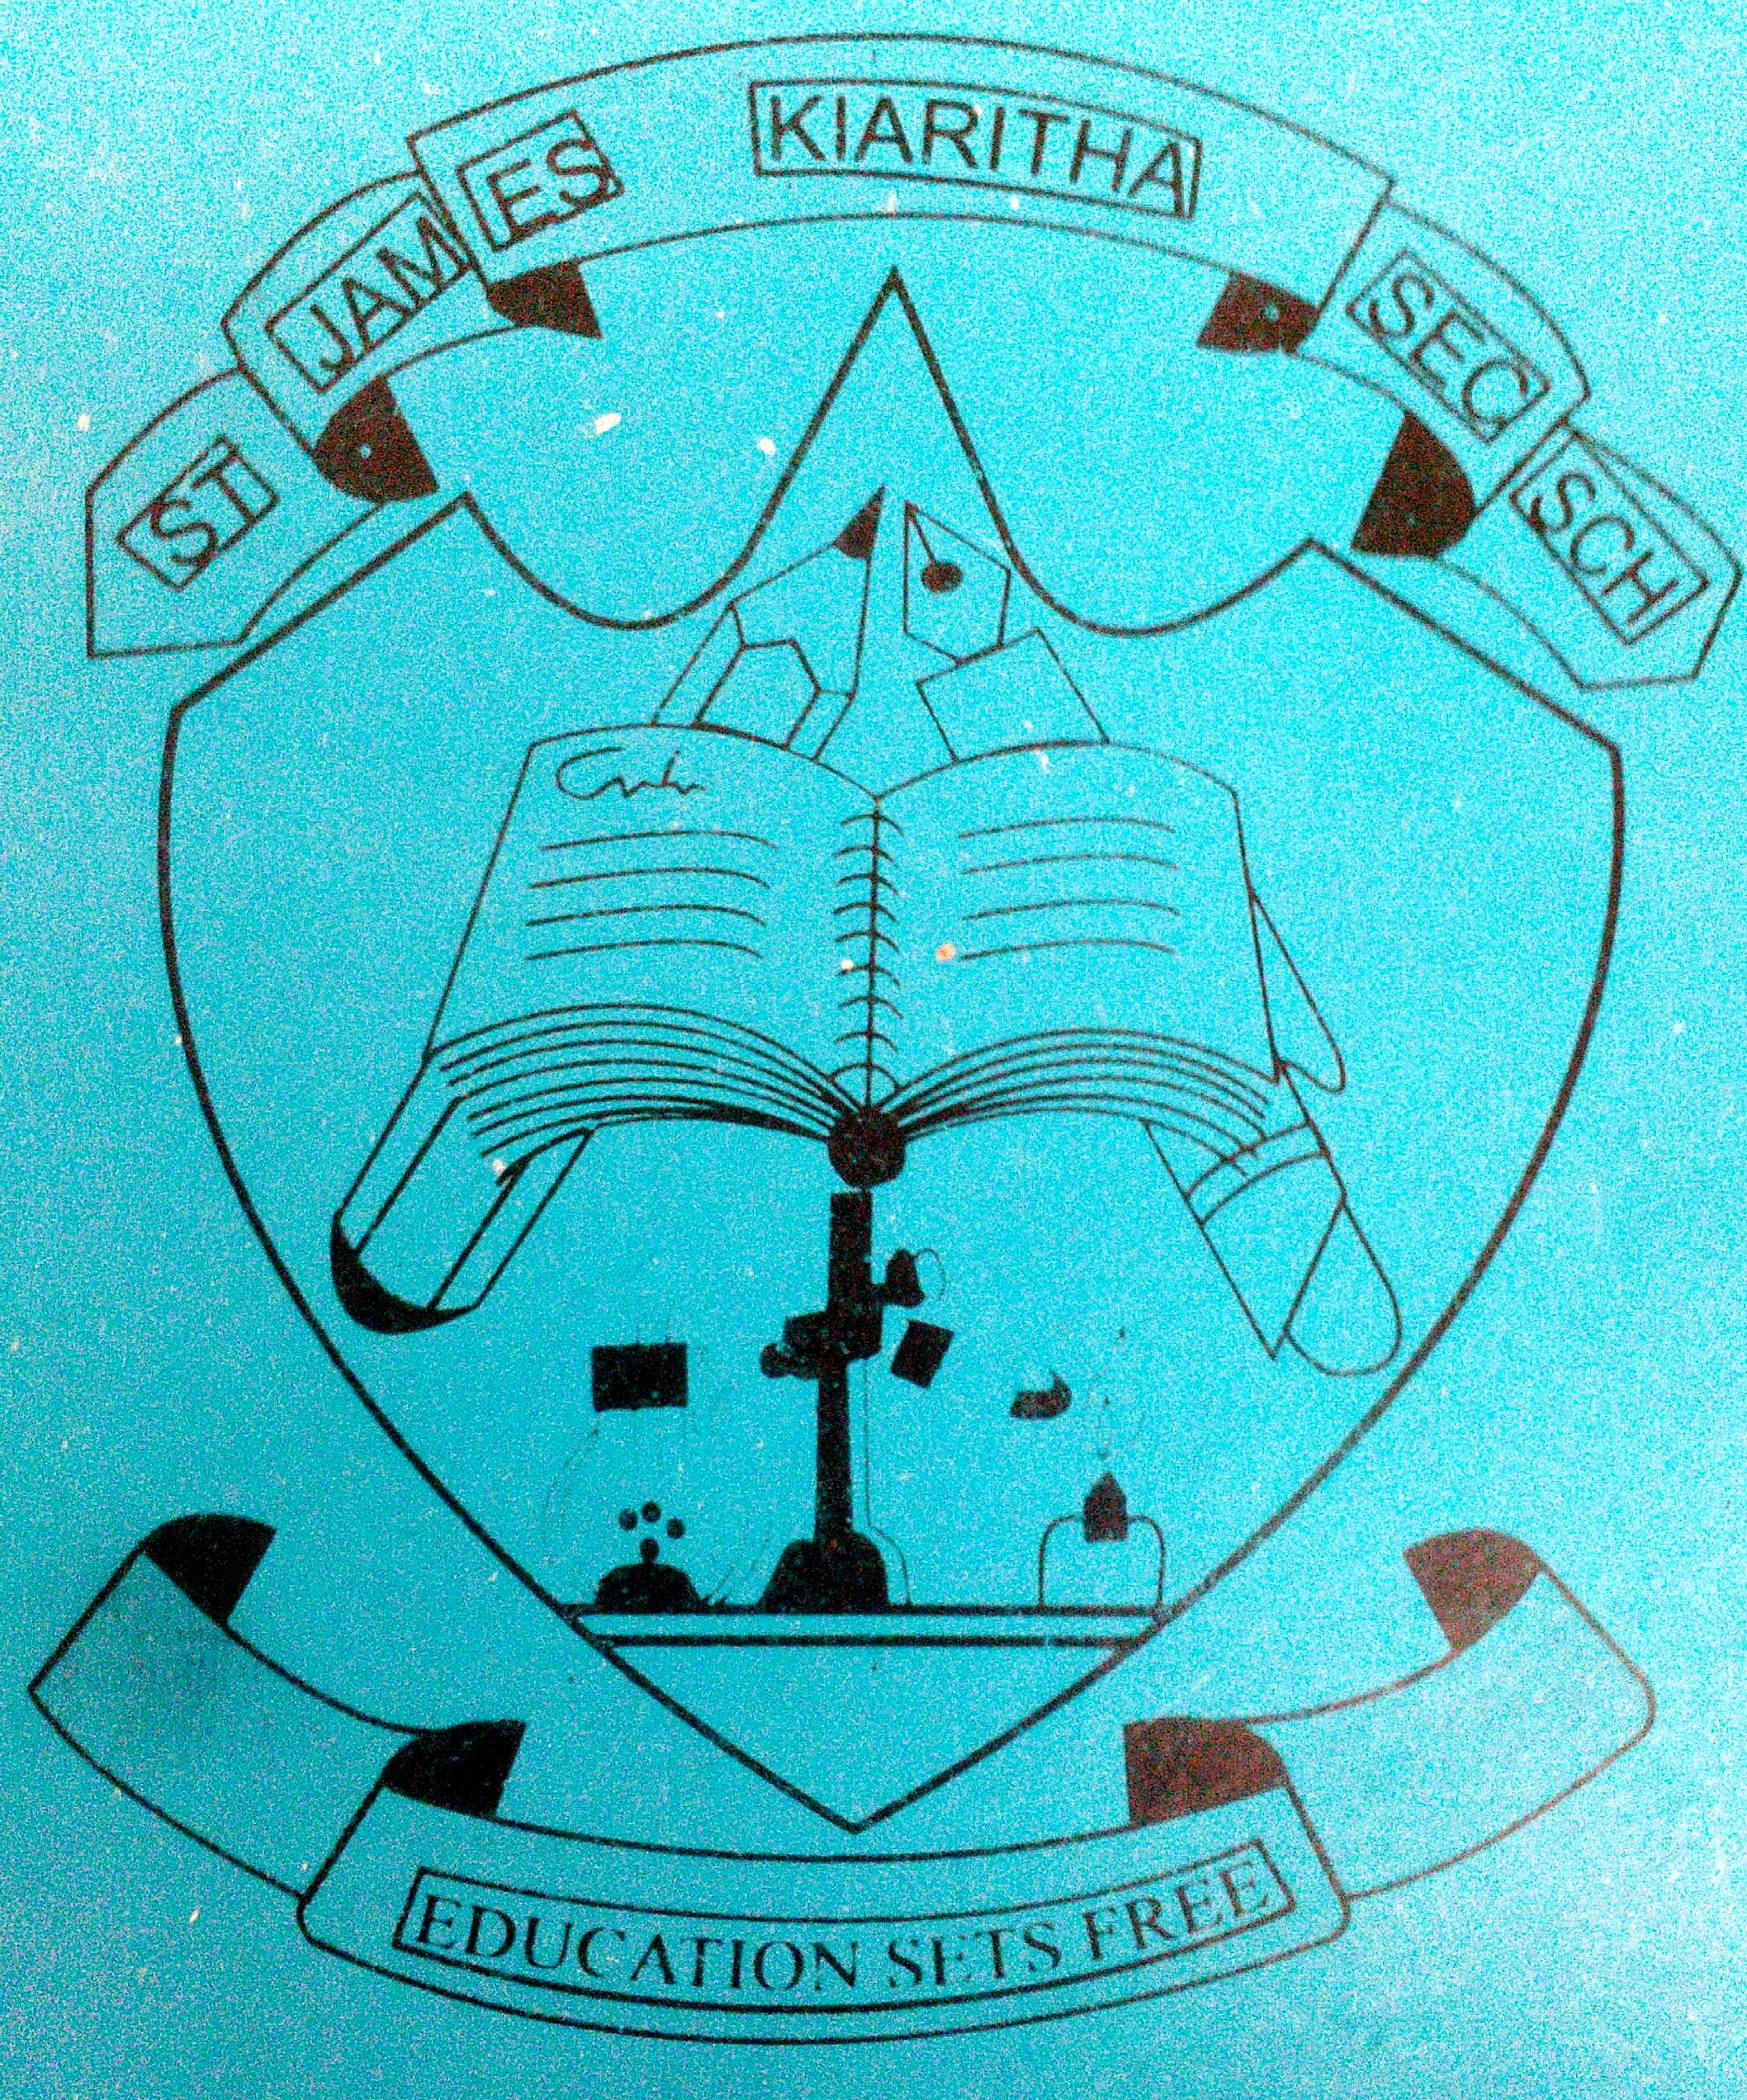 St James Kiaritha Secondary School